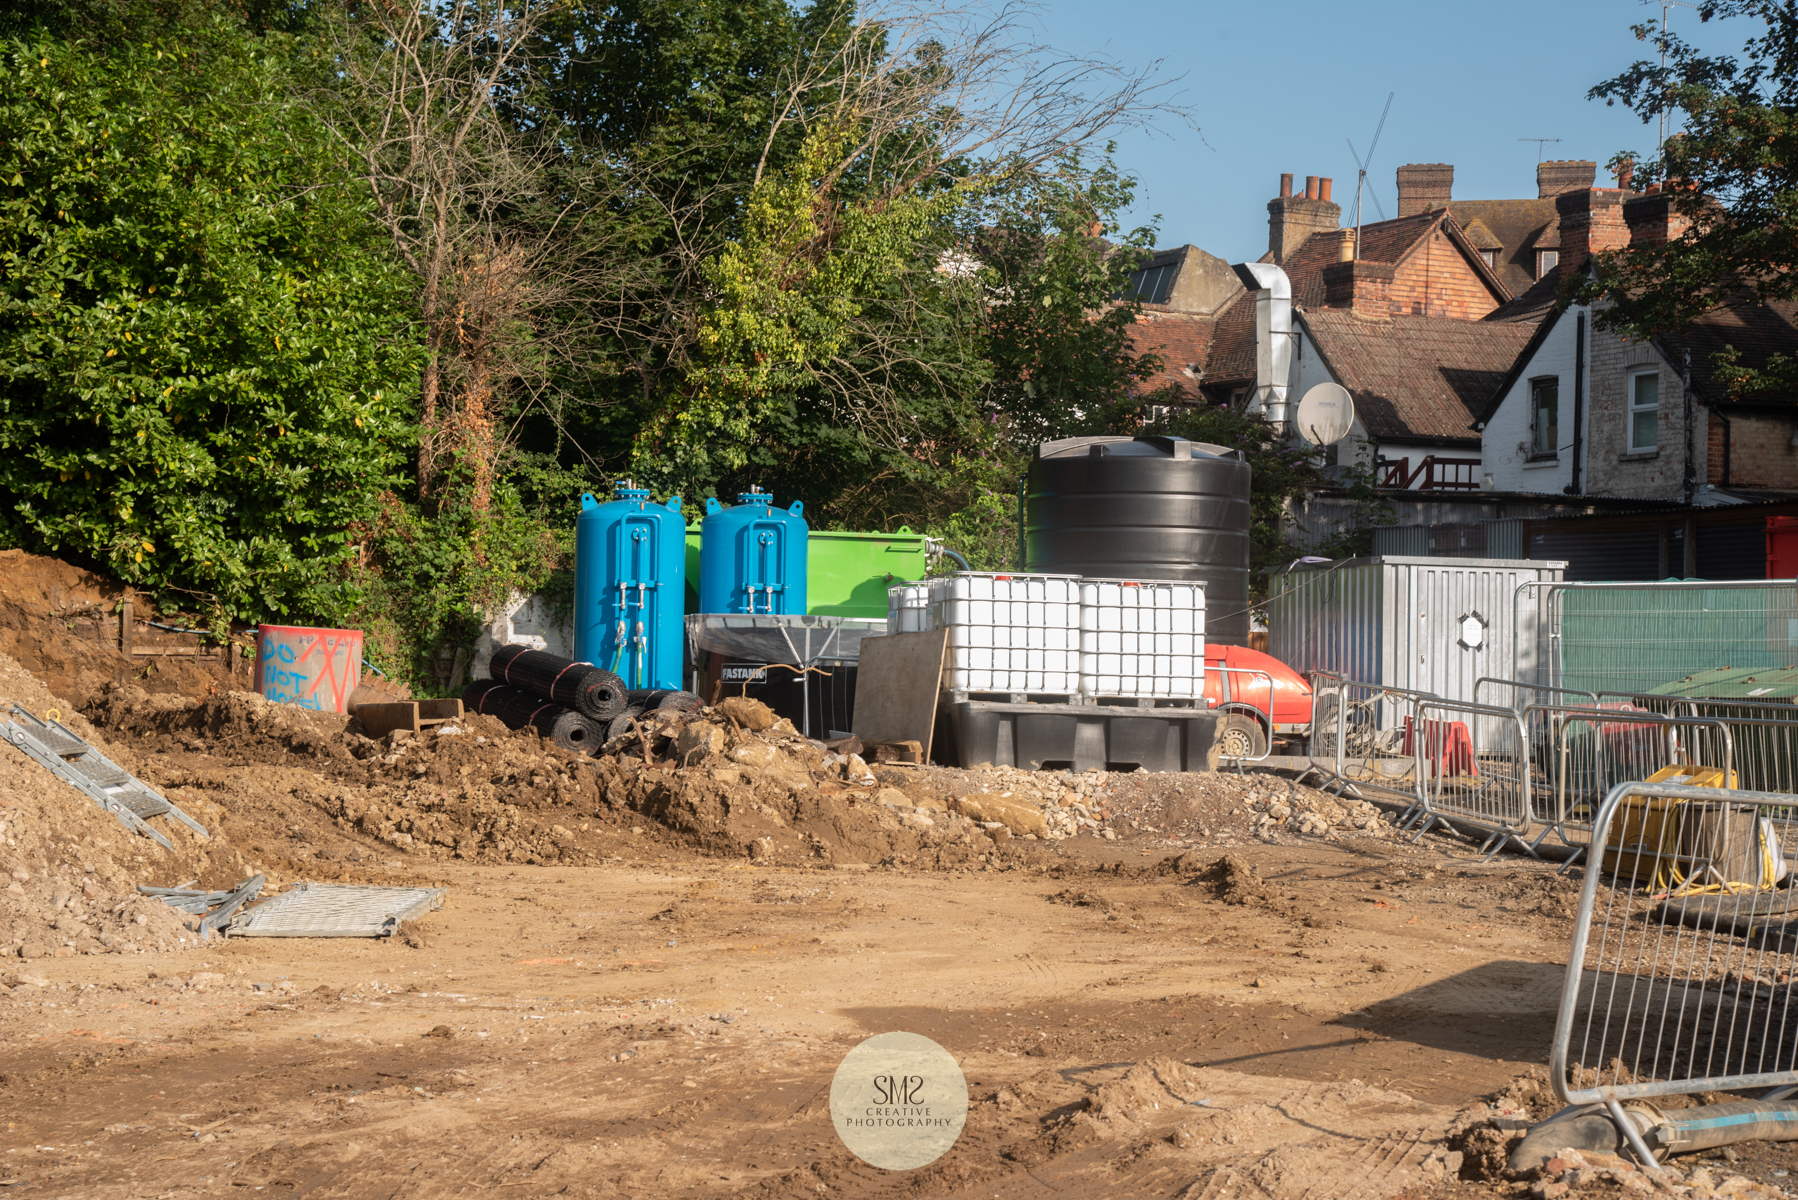 The tanks are part of the water purification process in the corner of the site behind the shops in Station Road East.